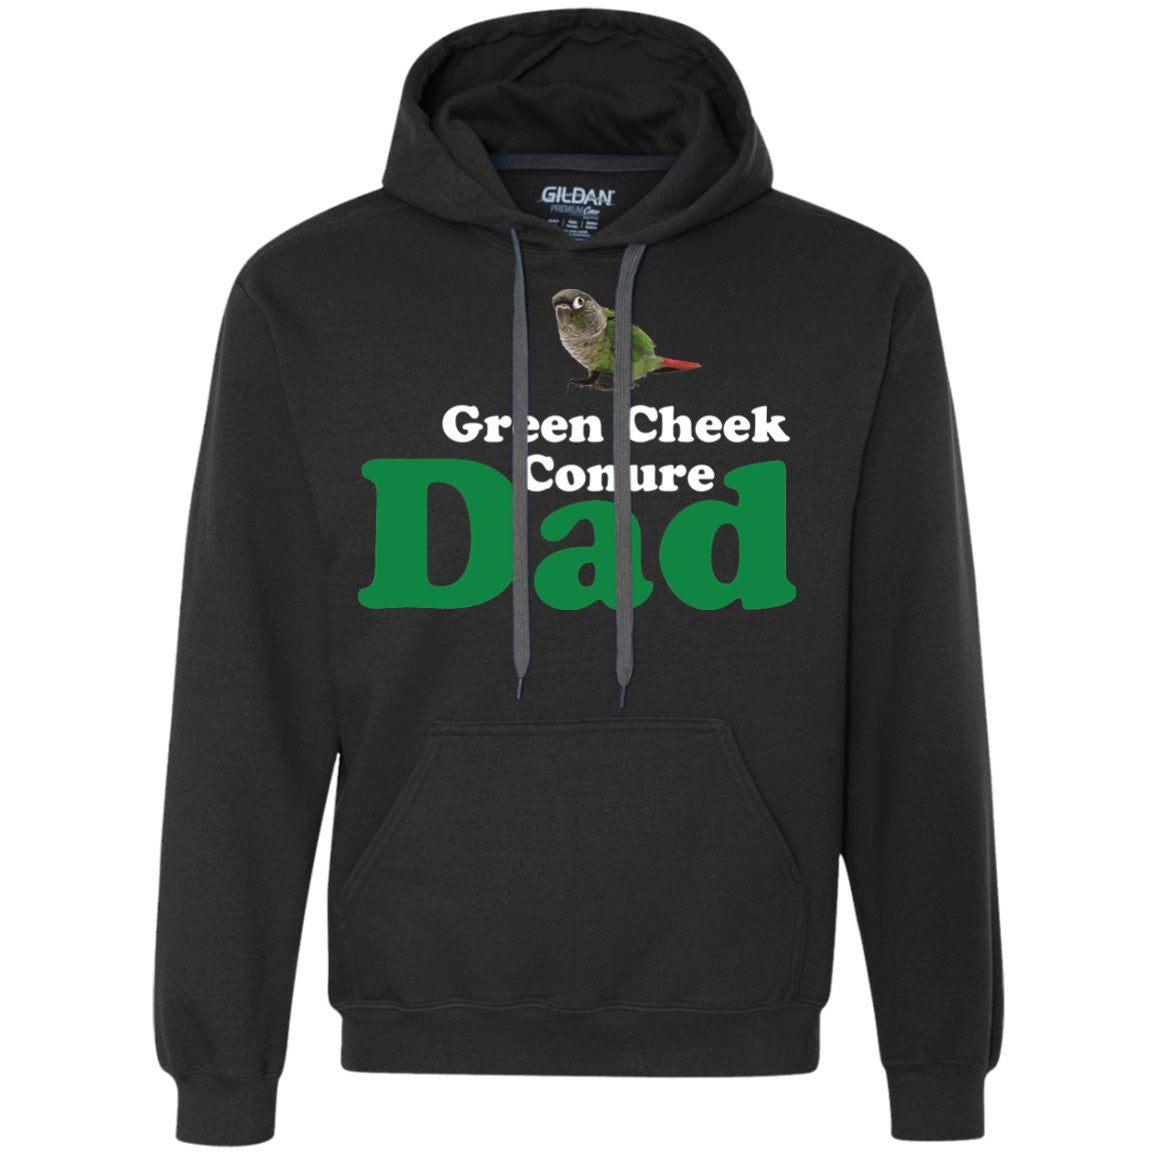 Green Cheek Conure Dad - Funny Shirt  Heavyweight Pullover Fleece Sweatshirt